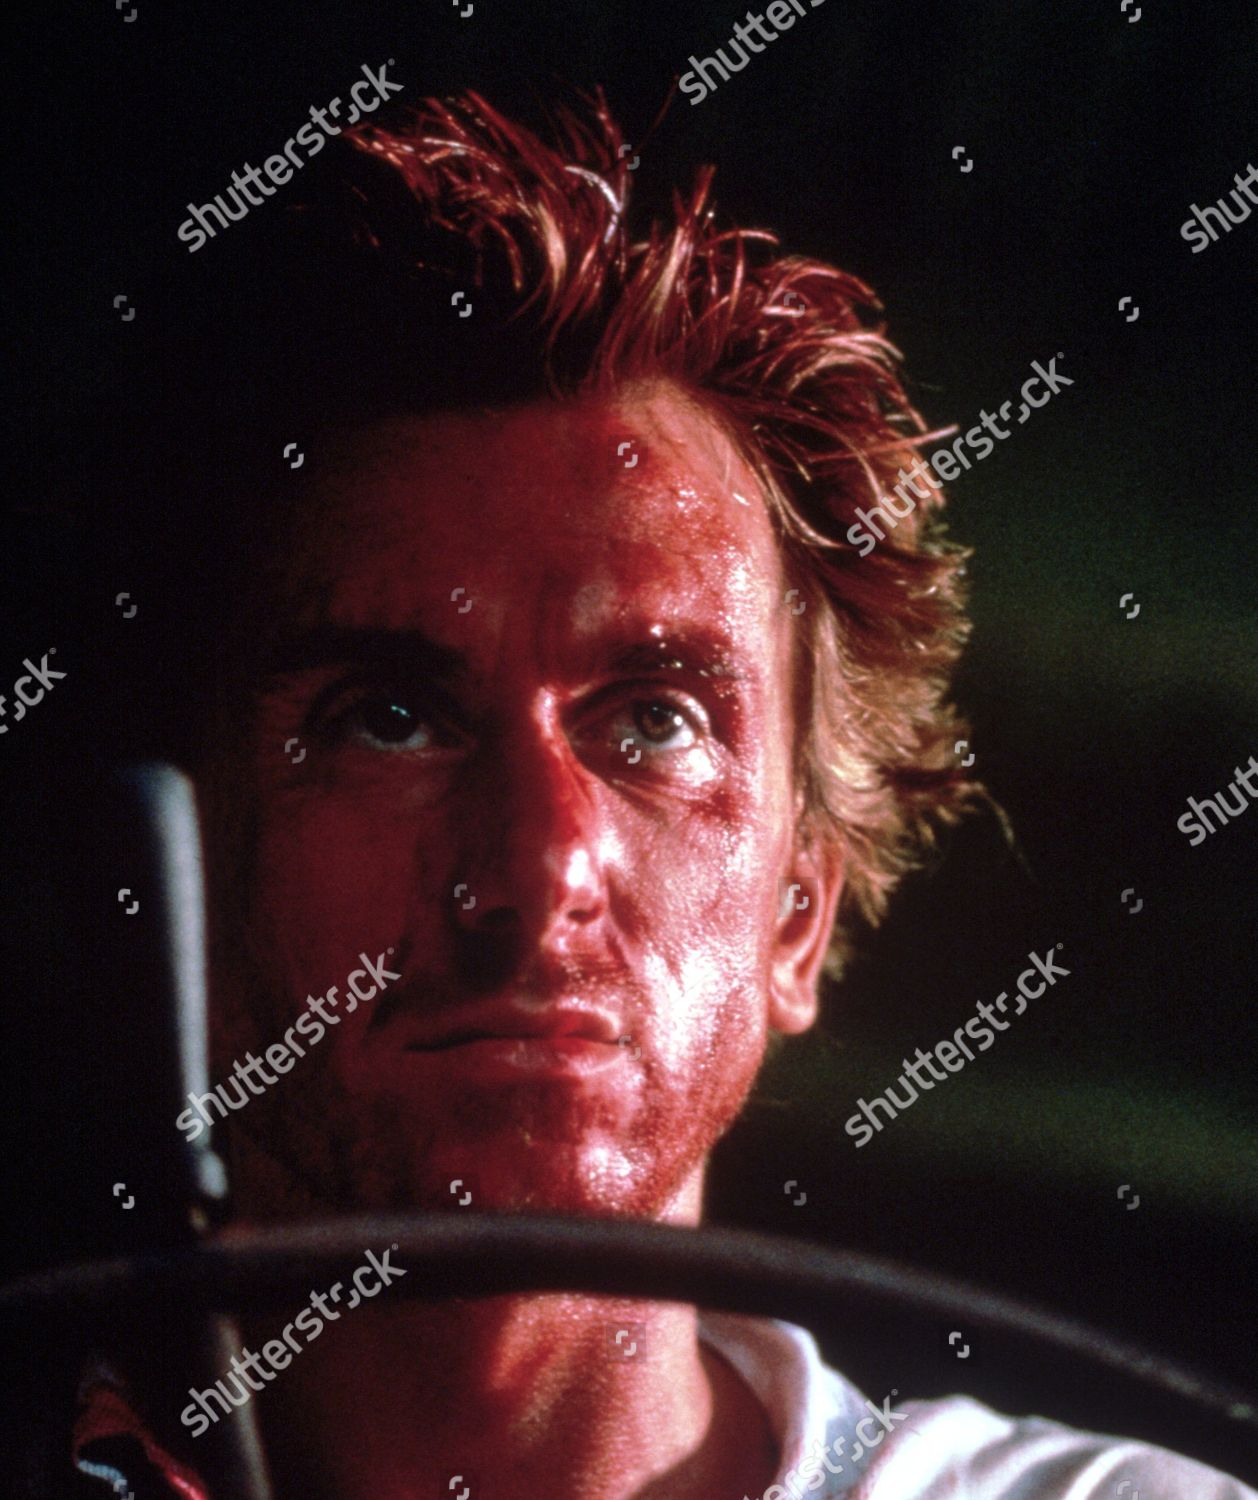 Film Stills Heart Darkness 1994 Nicolas Roeg Stock Photo 390935in